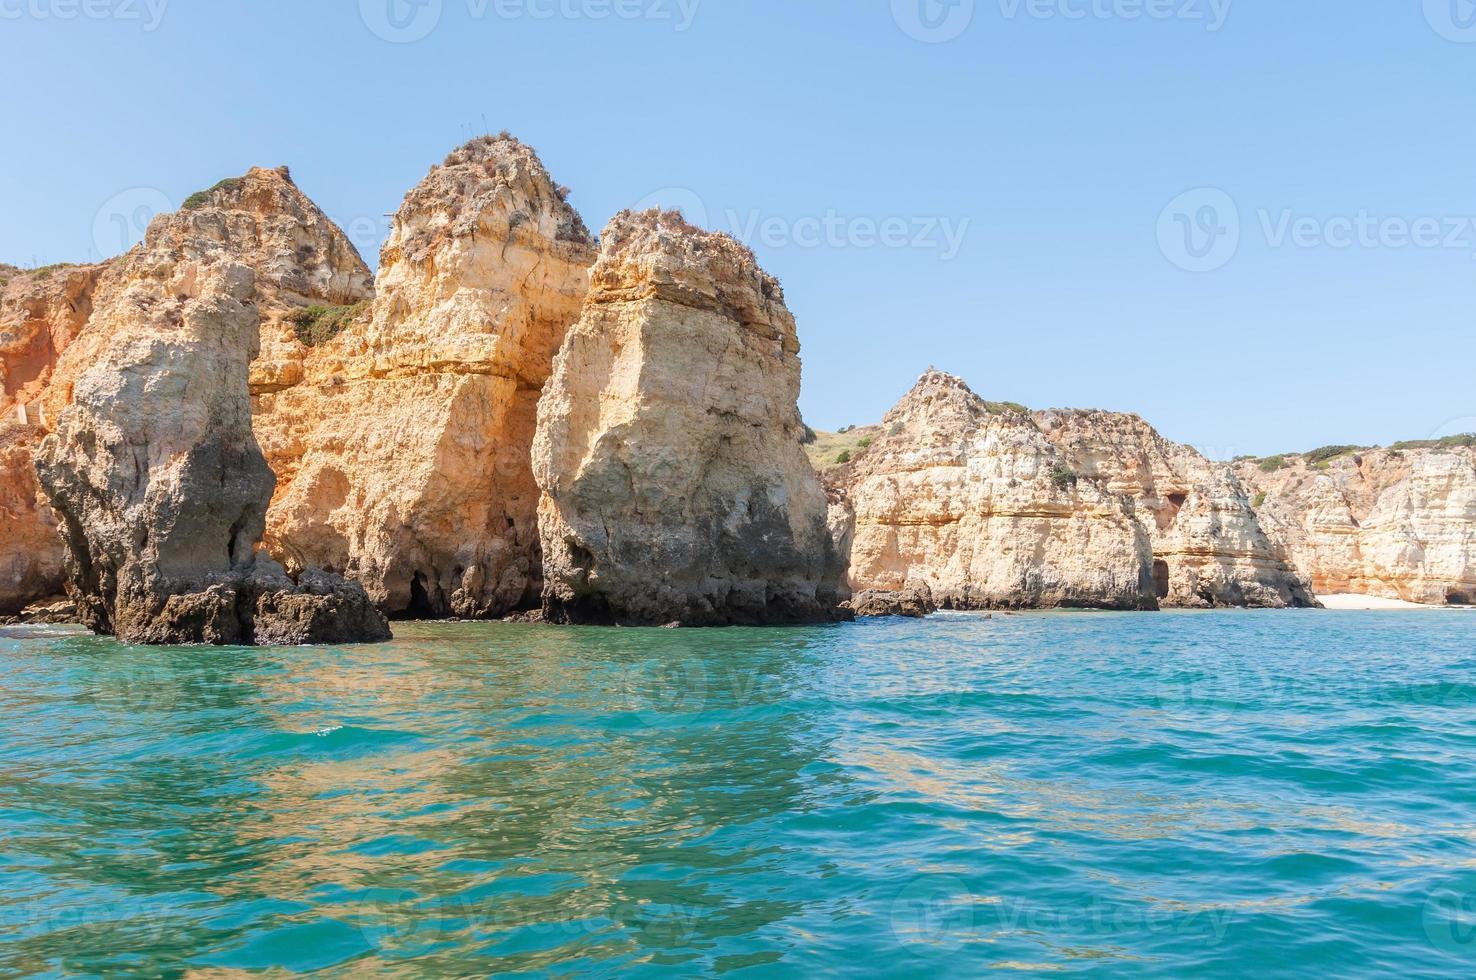 Rock formations near Lagos seen from the water photo